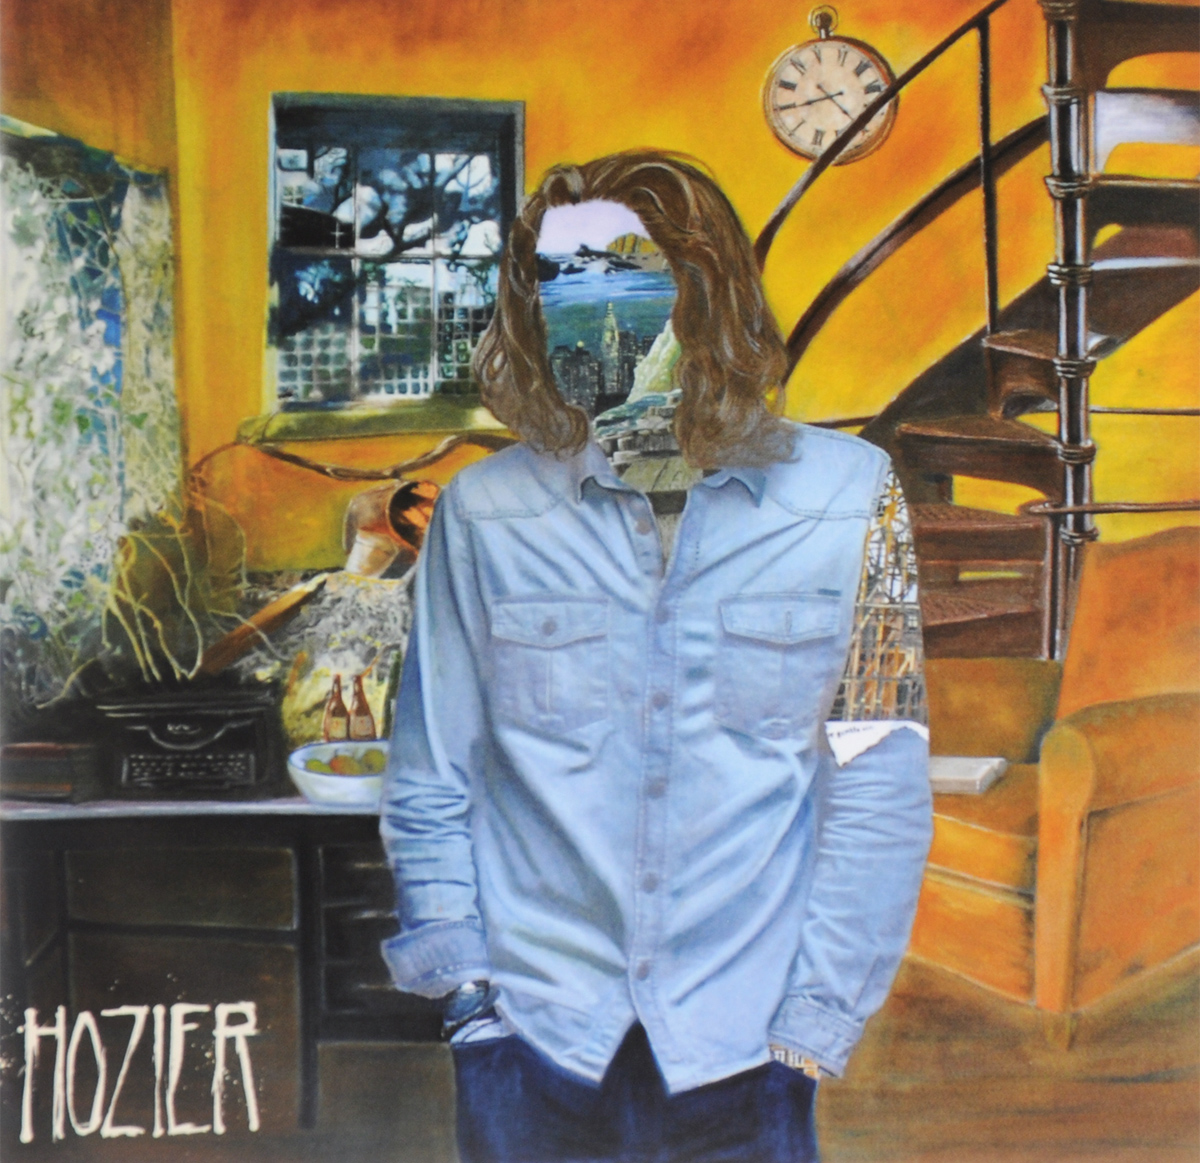 Hozier Hozier. Hozier. Special Edition (2 CD) элтон джон elton john goodbye yellow brick road deluxe edition 2 cd